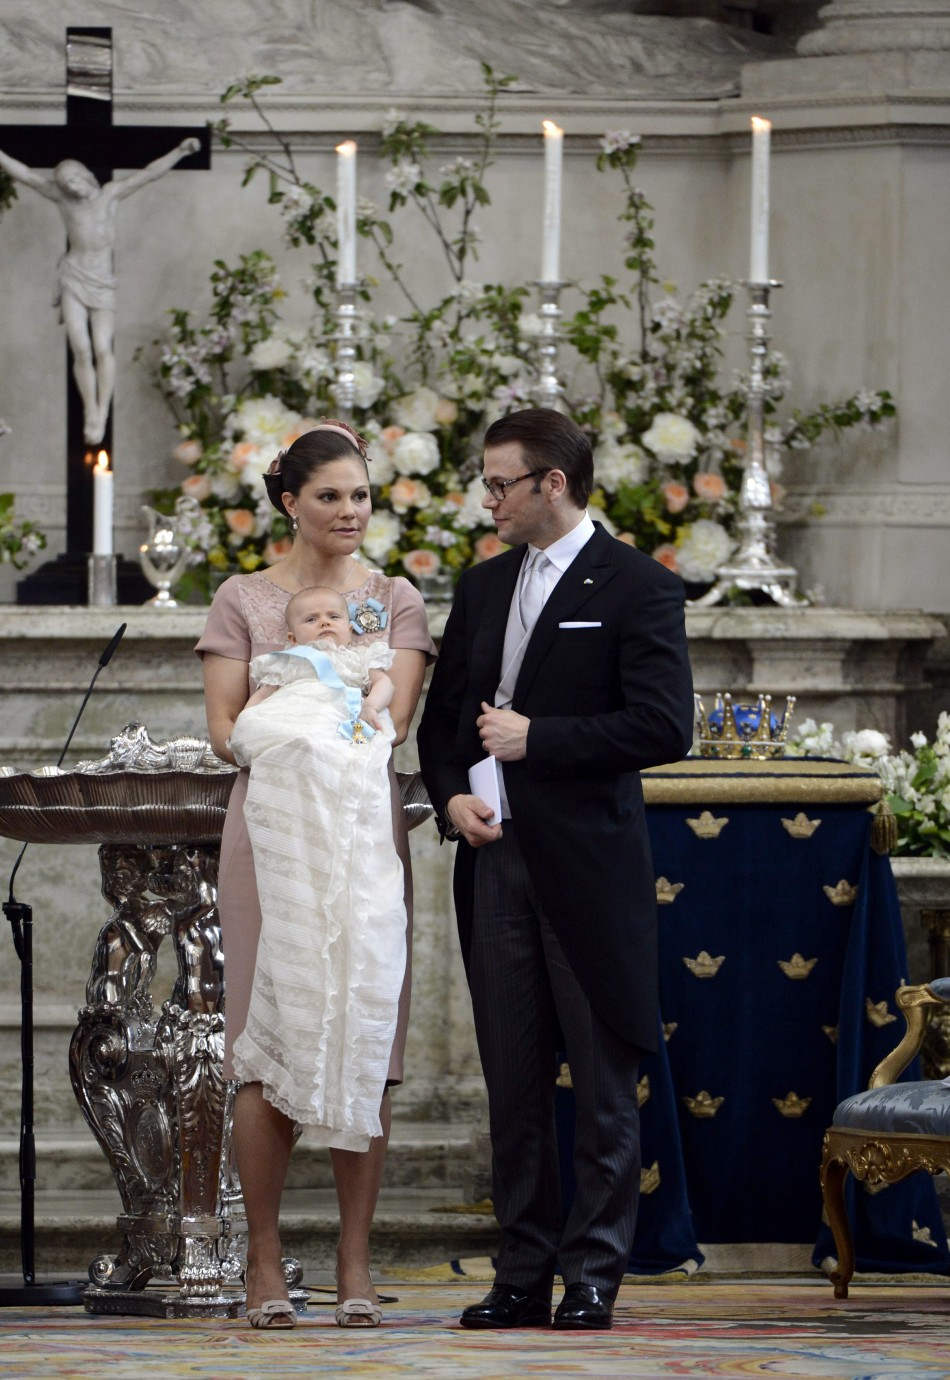 Sweden's Crown Princess Victoria holds Princess Estelle as she stands with Prince Daniel after the christening ceremony, held at the Royal Chapel in Stockholm